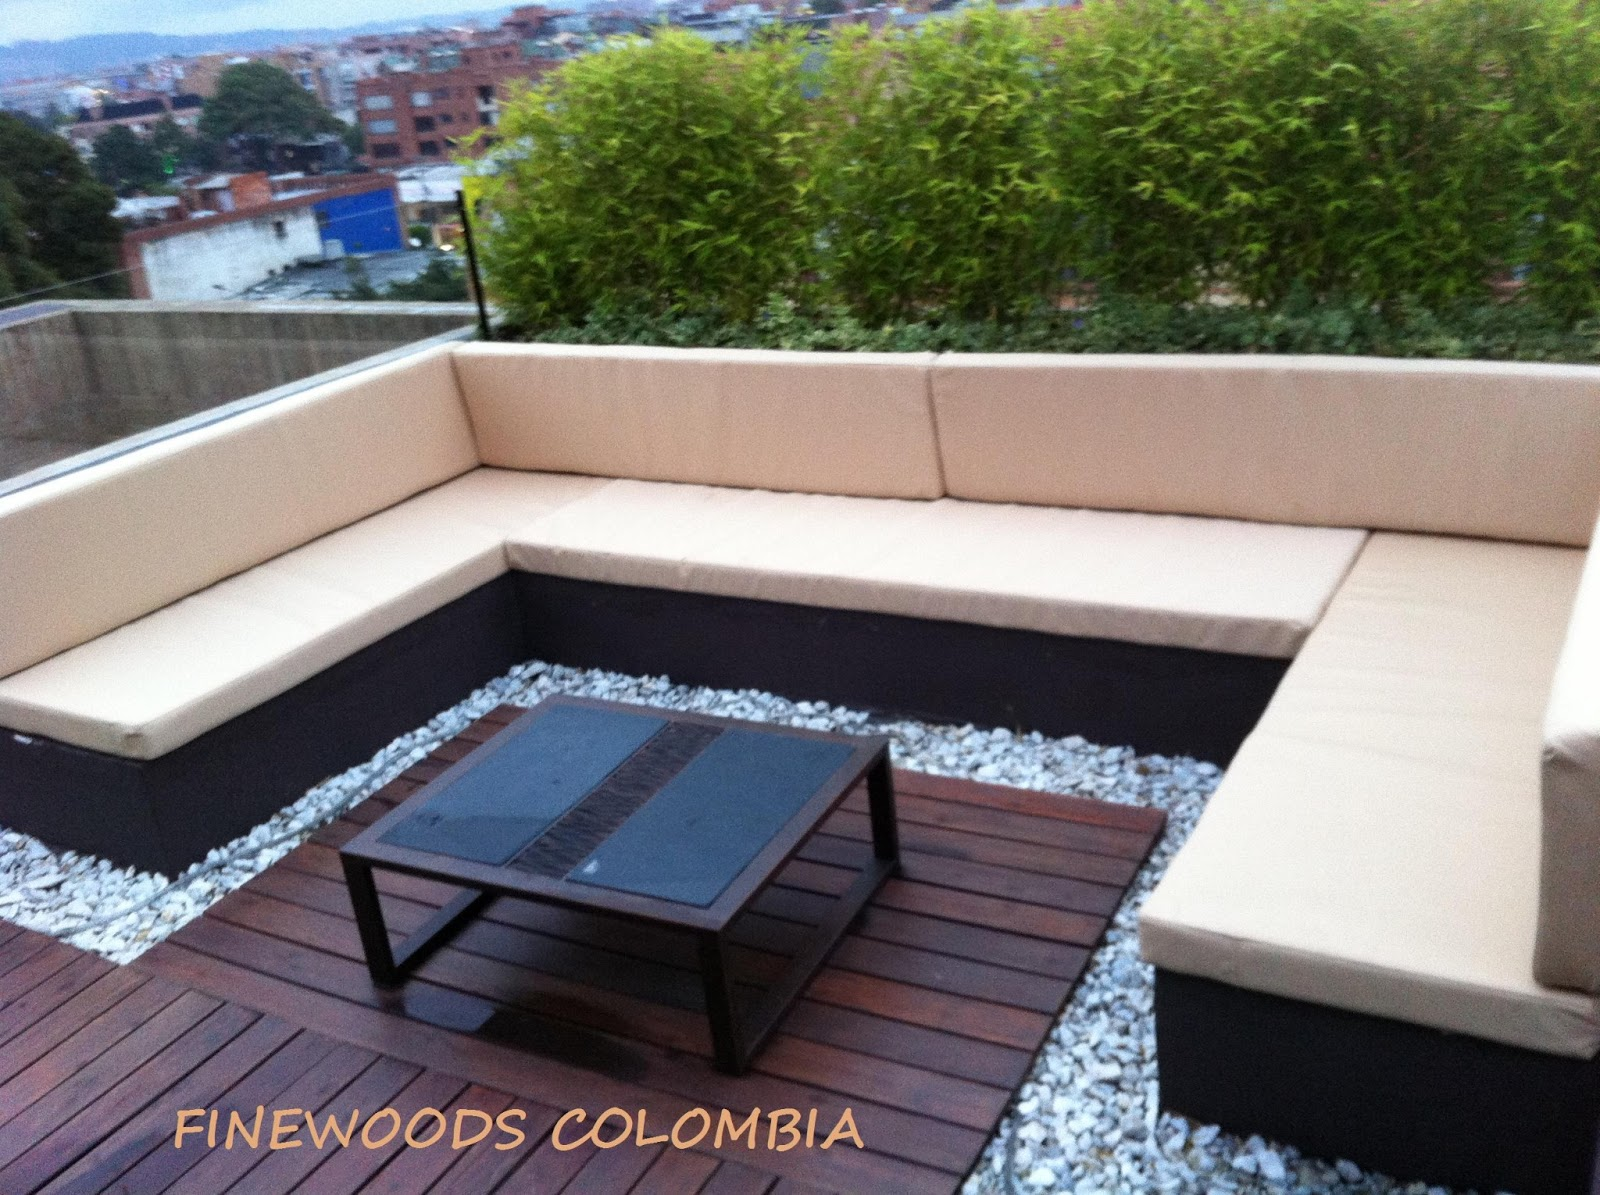 Finewoods colombia muebles exterior - Cojines sillas exterior ...